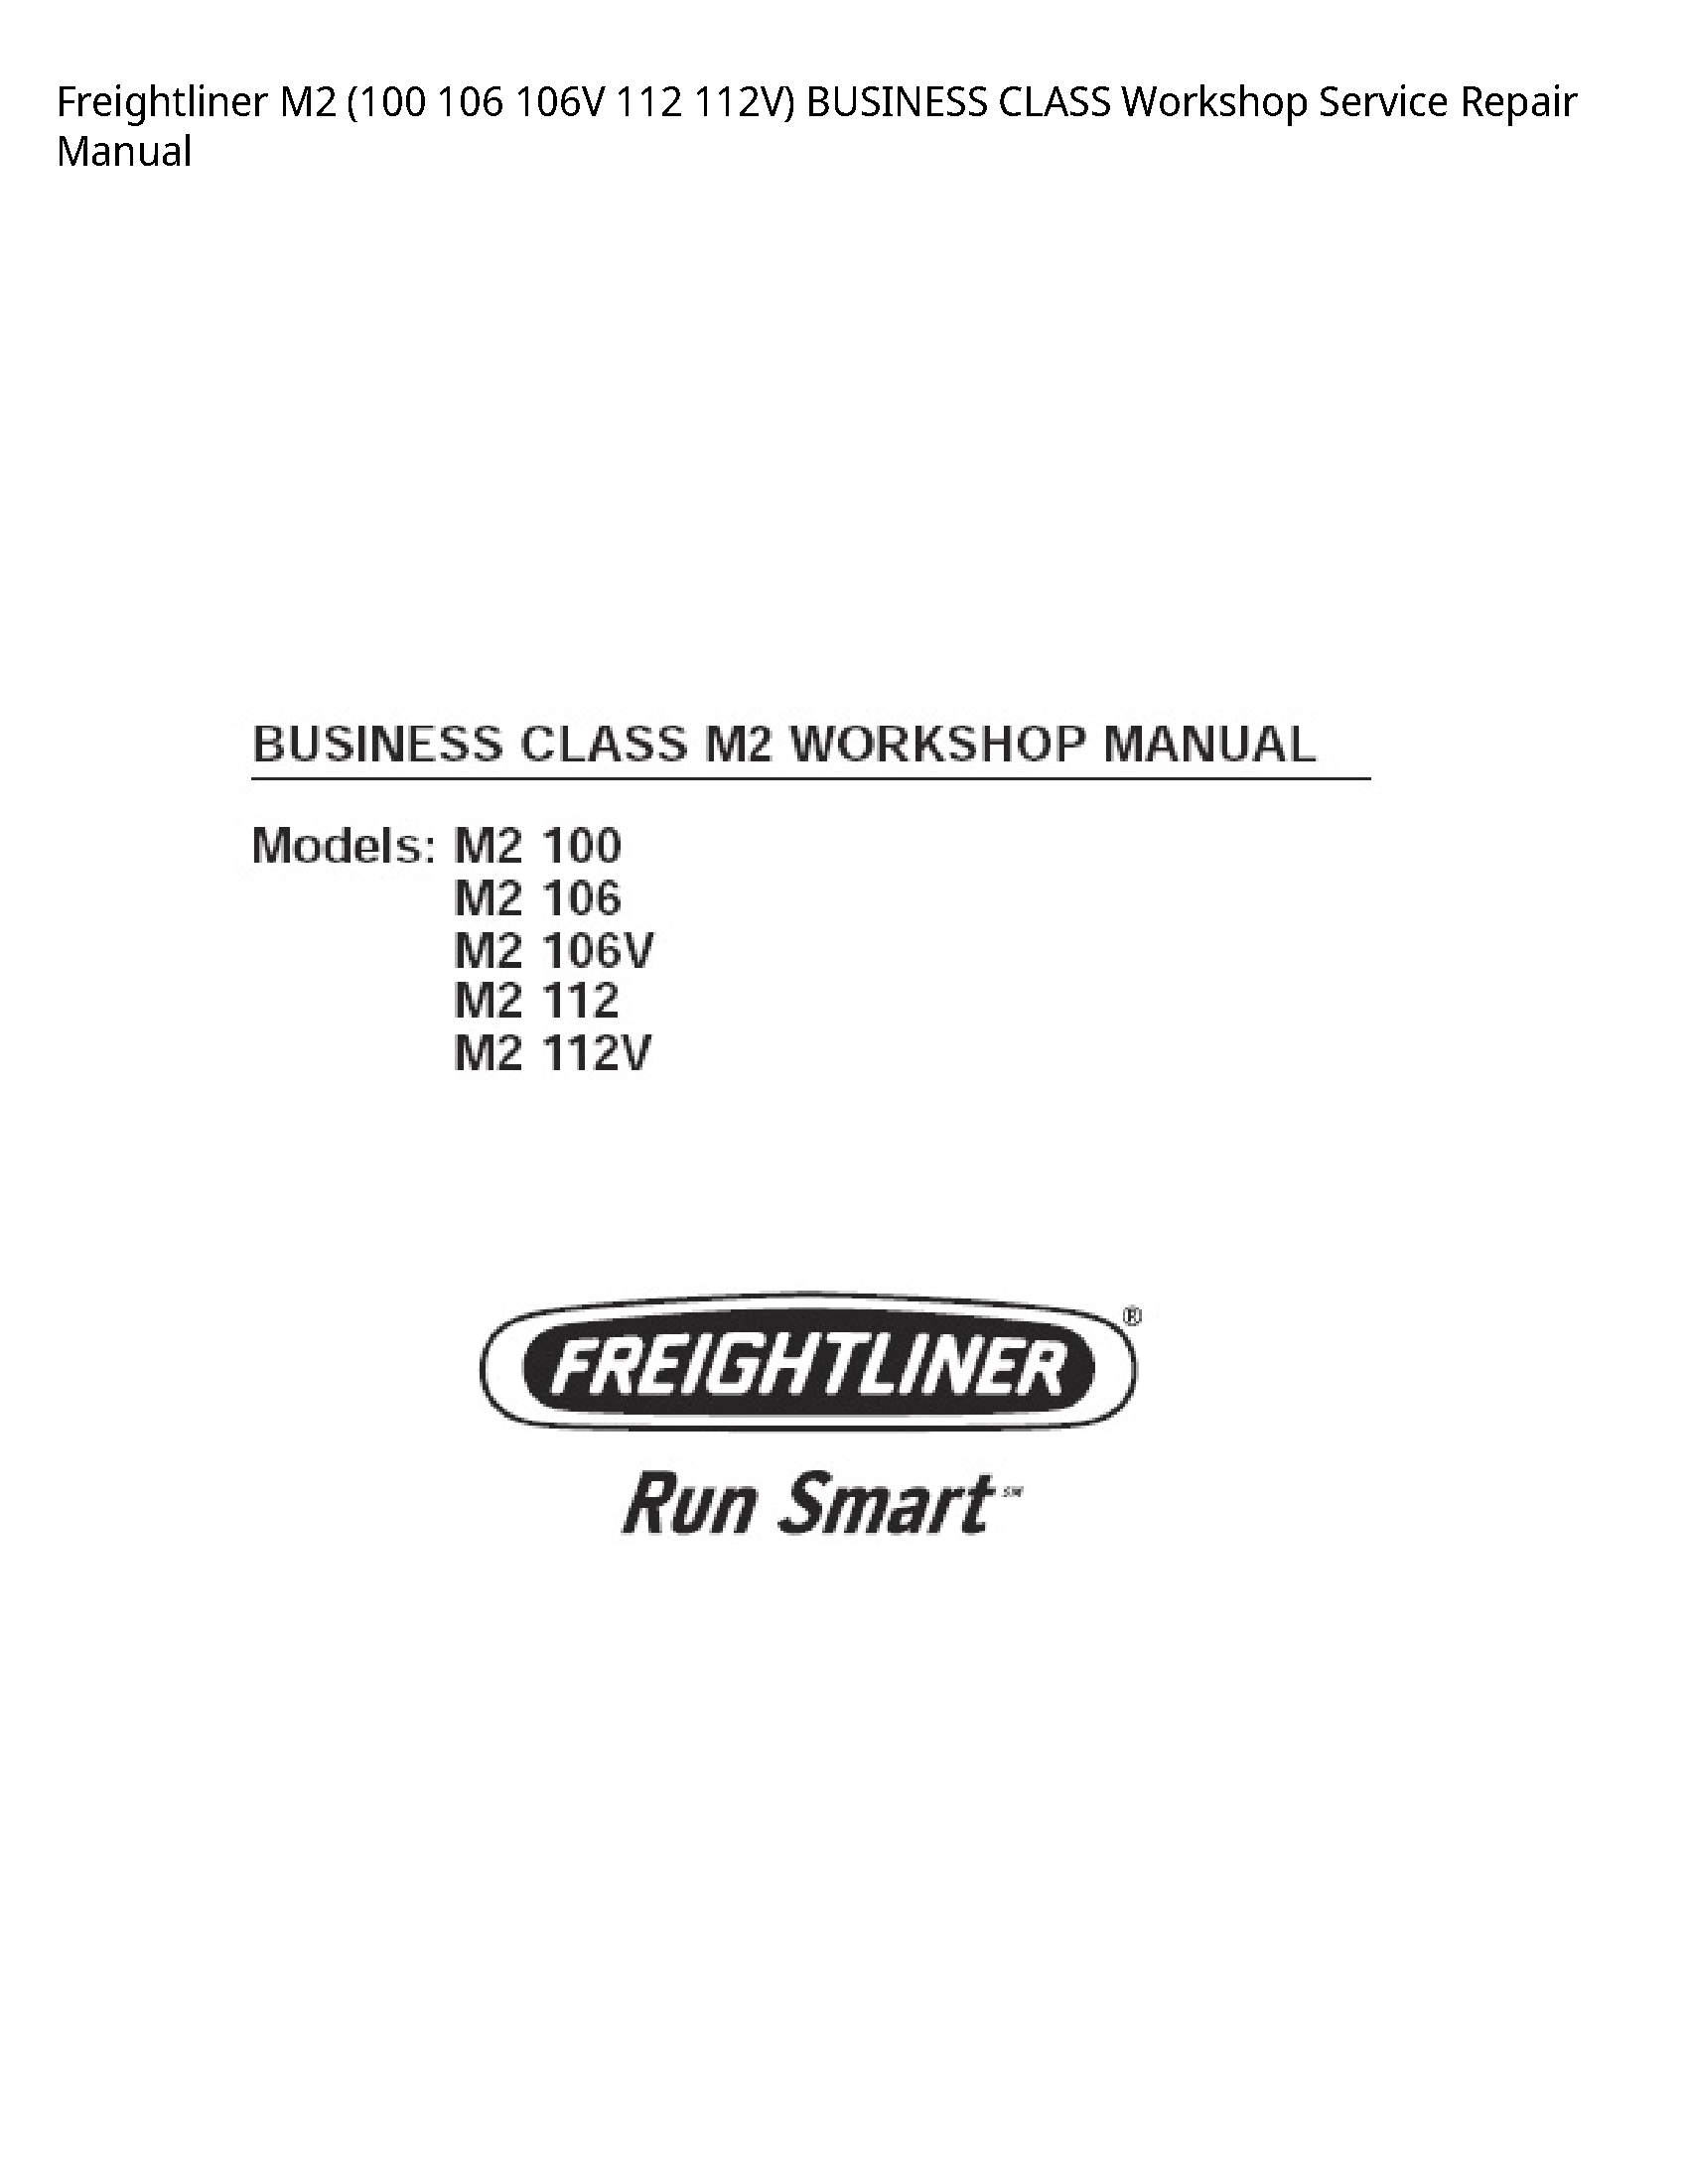 Freightliner M2 BUSINESS CLASS manual